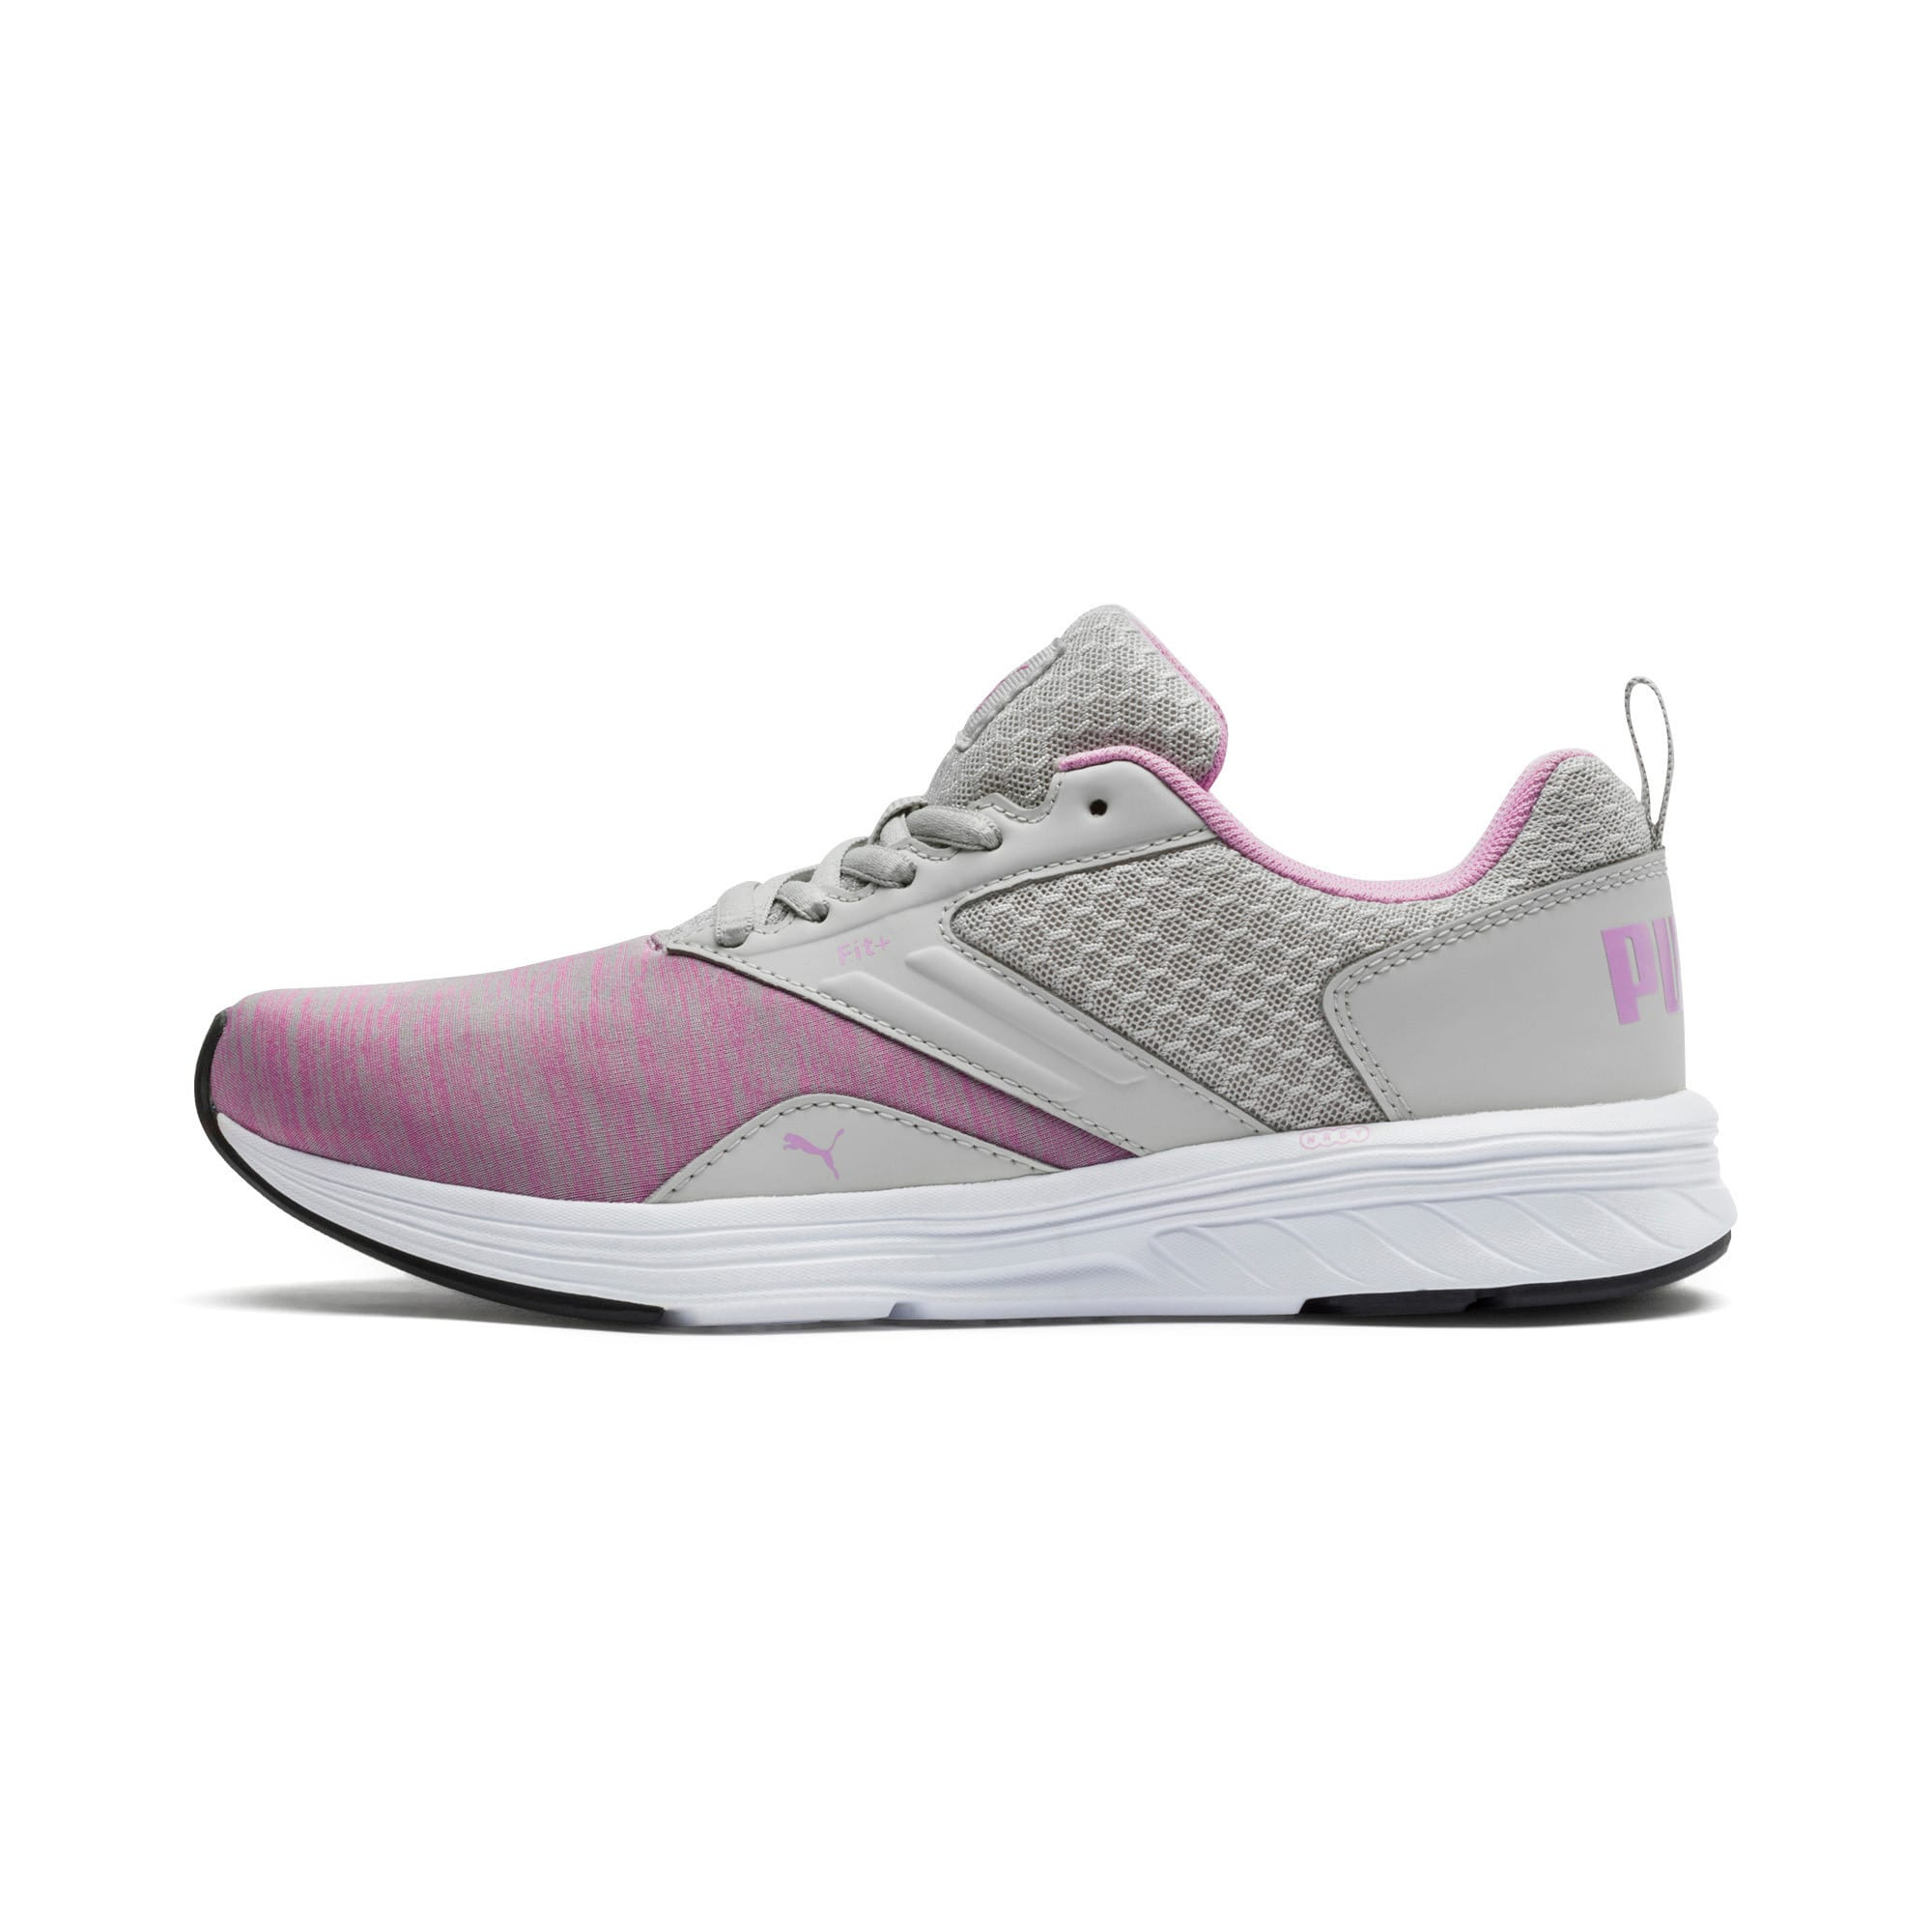 Thumbnail 1 of NRGY Comet Kids' Training Shoes, Gray Violet-Orchid, medium-IND